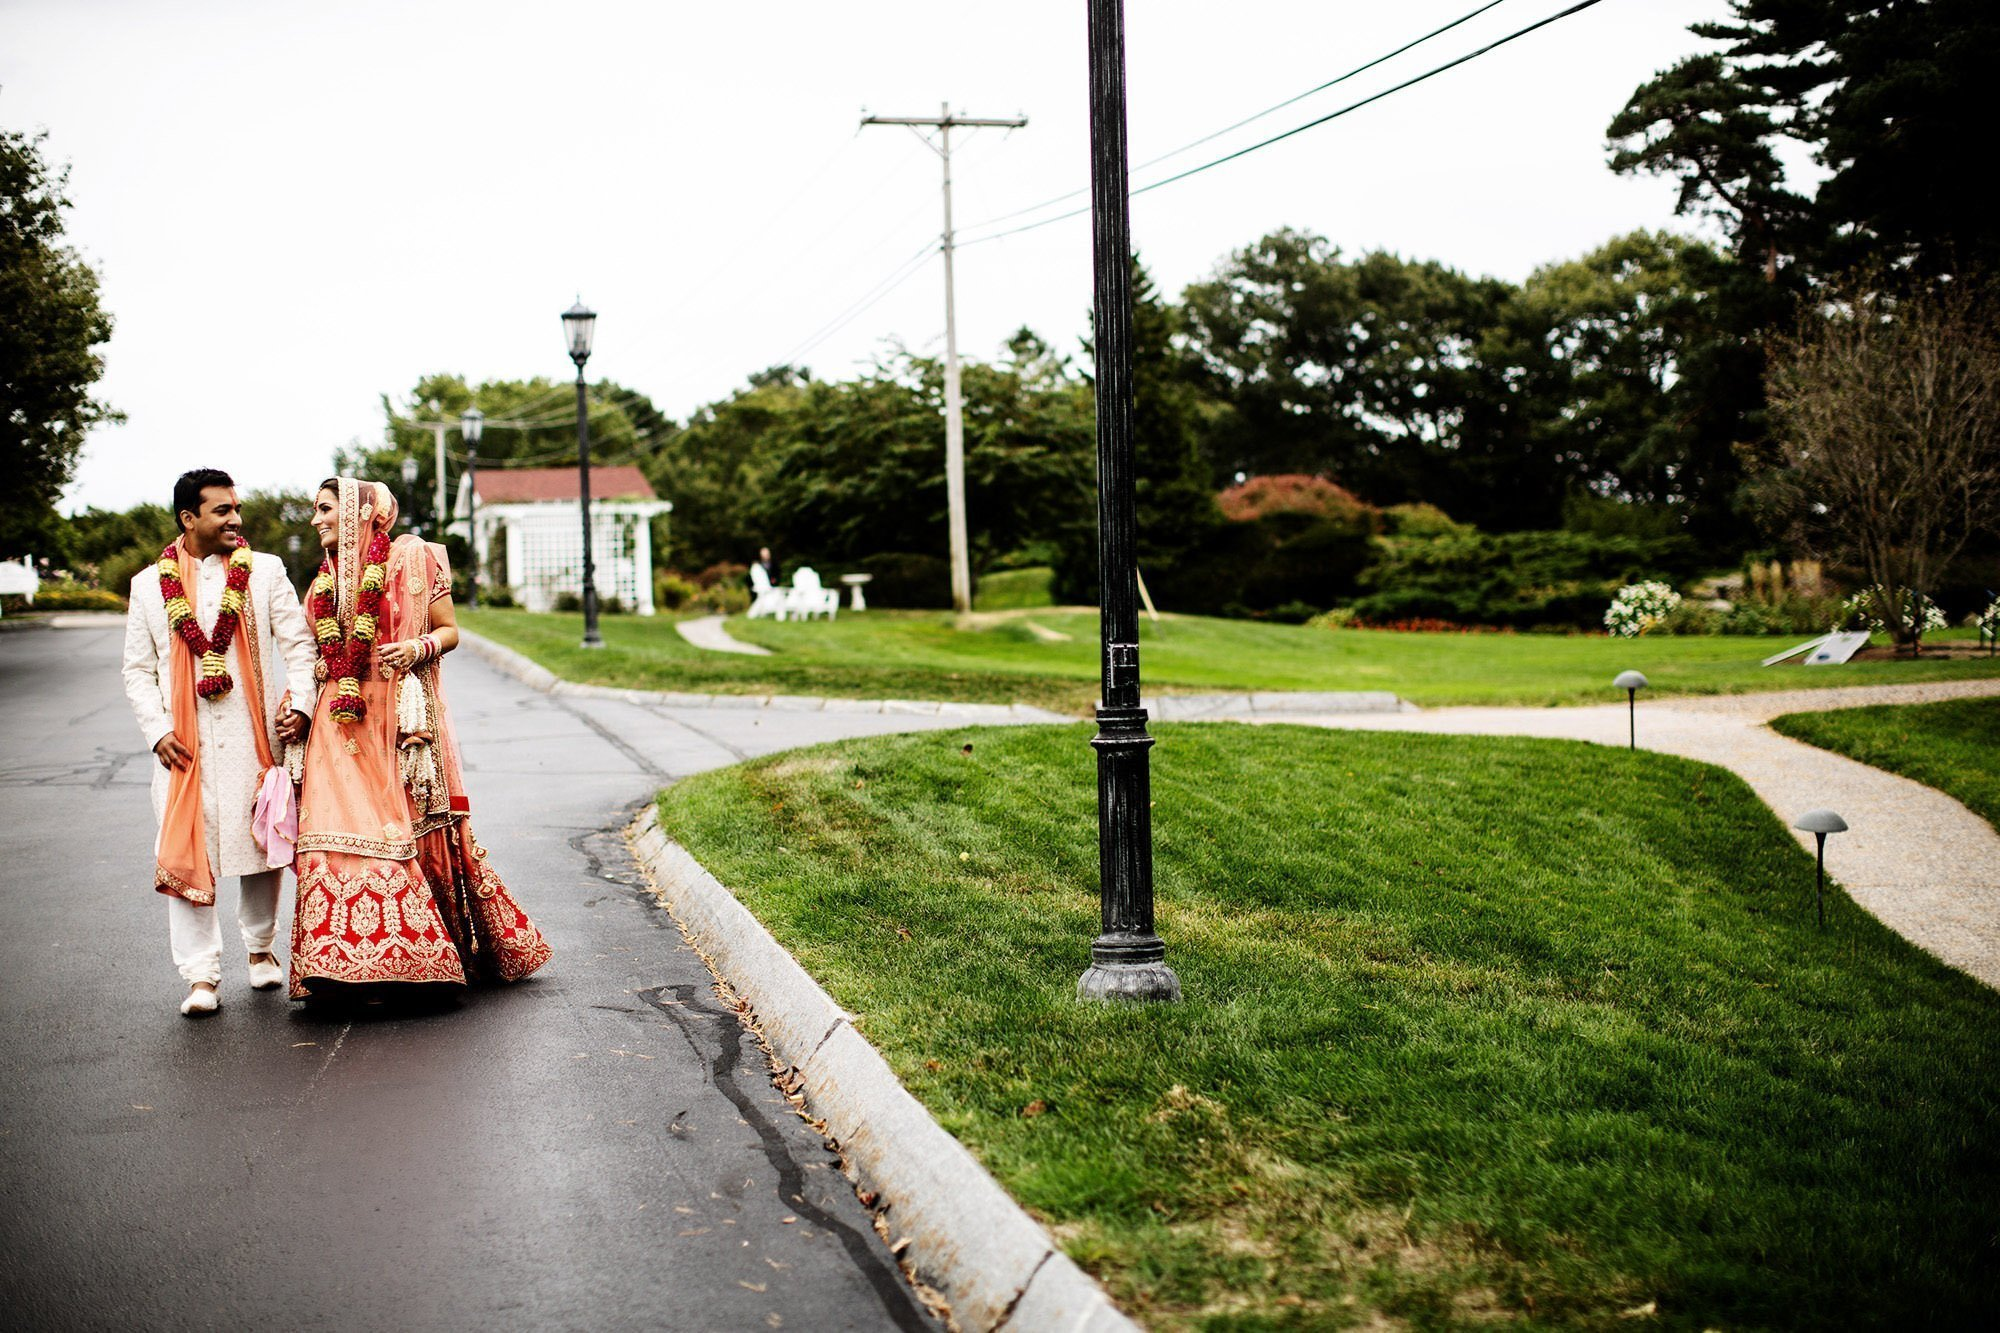 Wentworth by the Sea Wedding  I  The bride and groom walk together following the Hindu ceremony.